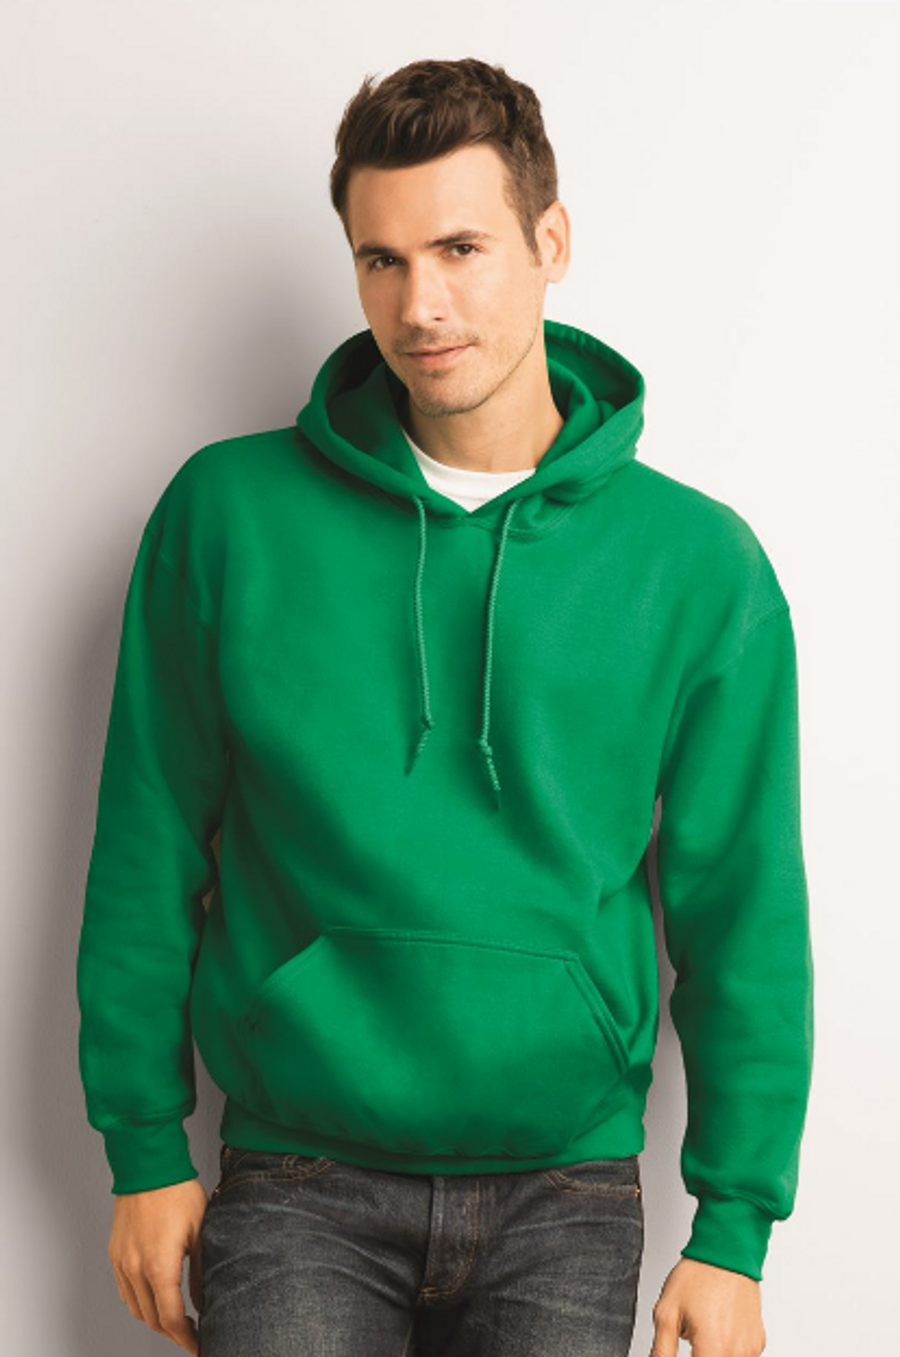 Gildan Hooded Sweatshirts ($10.00-5.50)